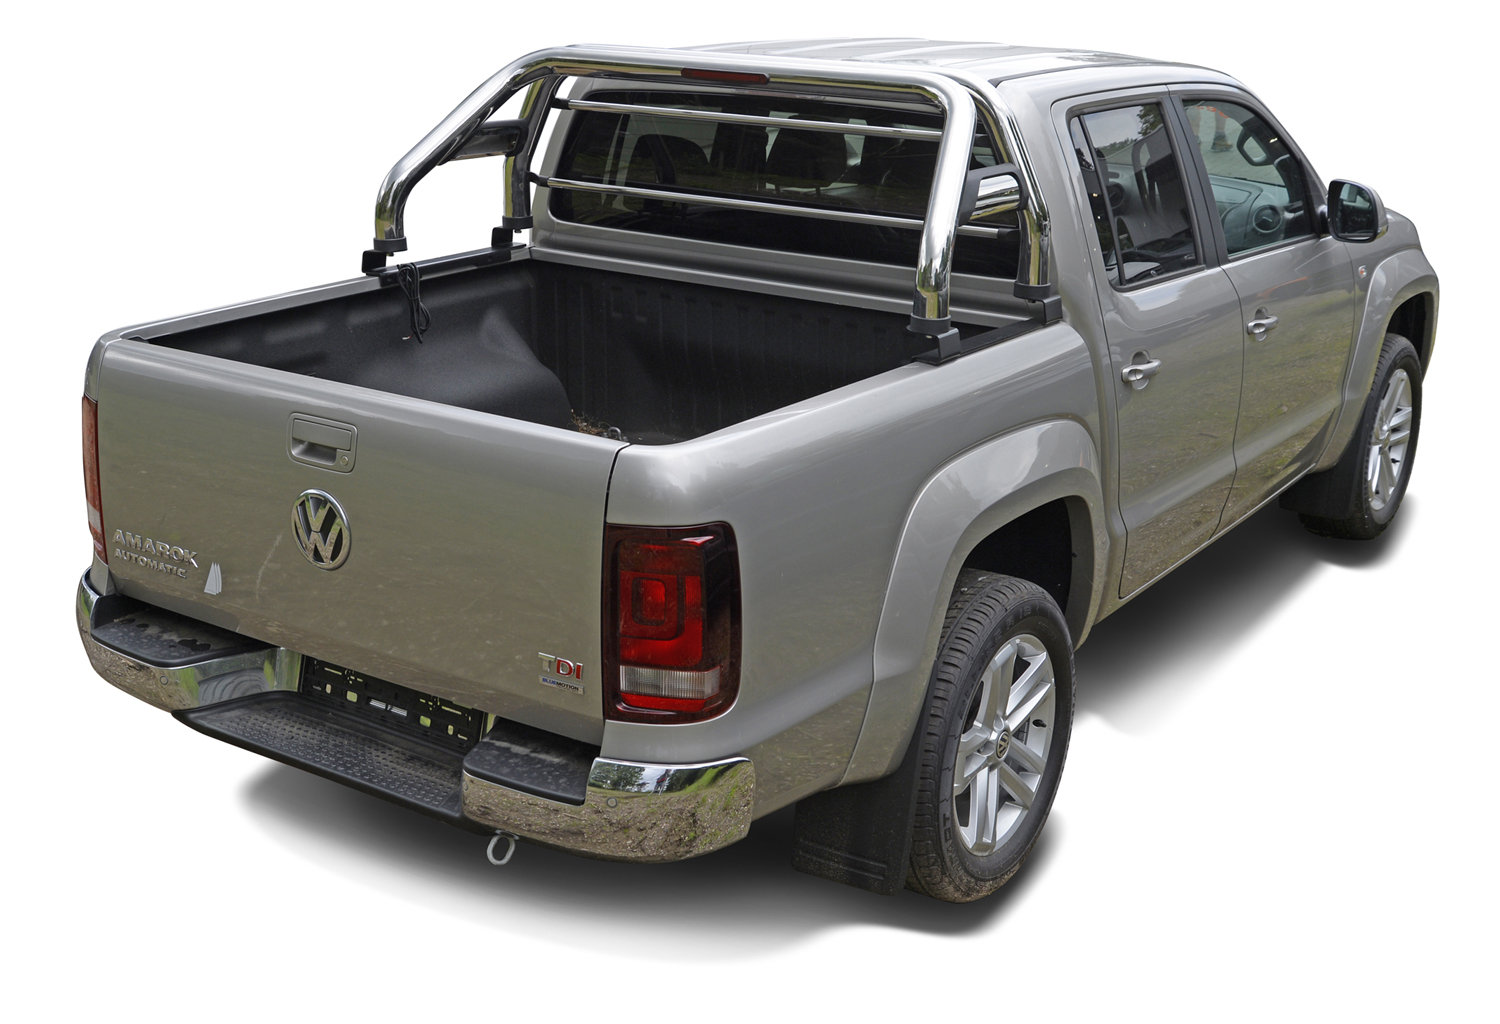 rollbar roll bar amarok 2010 berrollb gel edelstahl. Black Bedroom Furniture Sets. Home Design Ideas